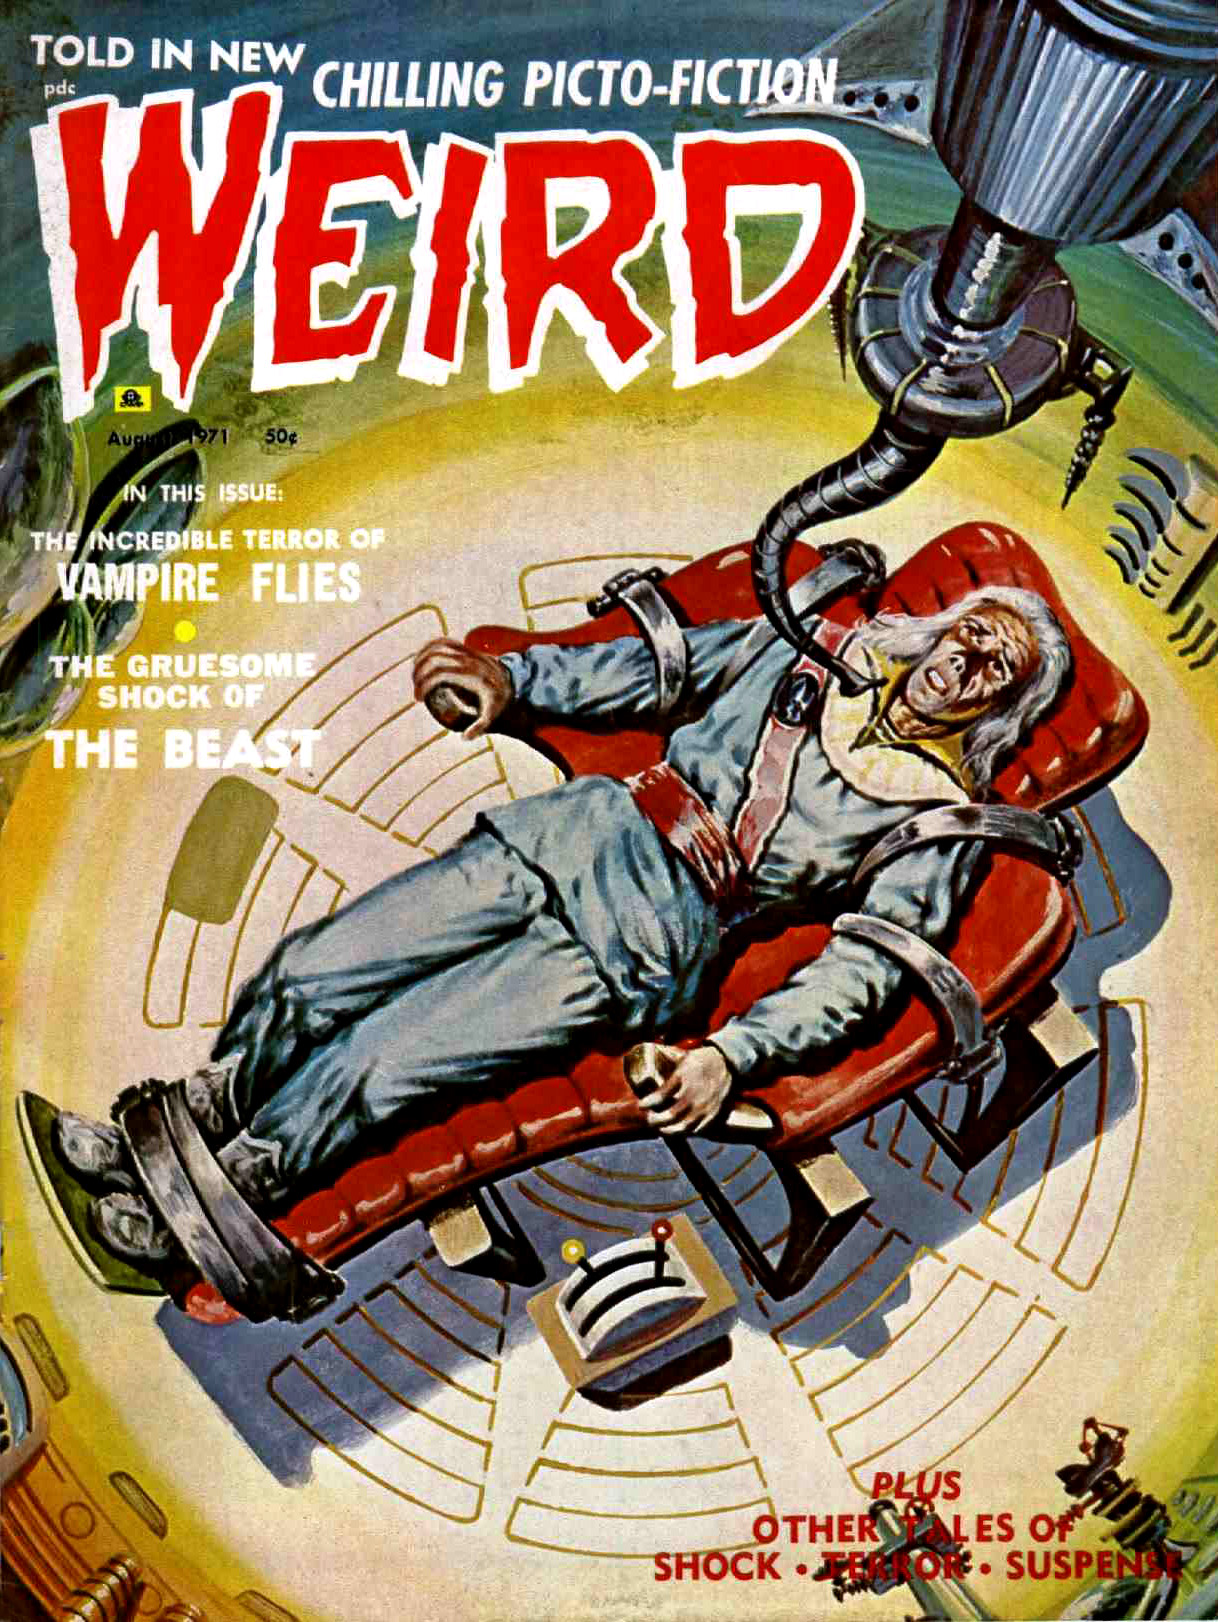 Weird Vol. 05 #4 (Eerie Publications, 1971)